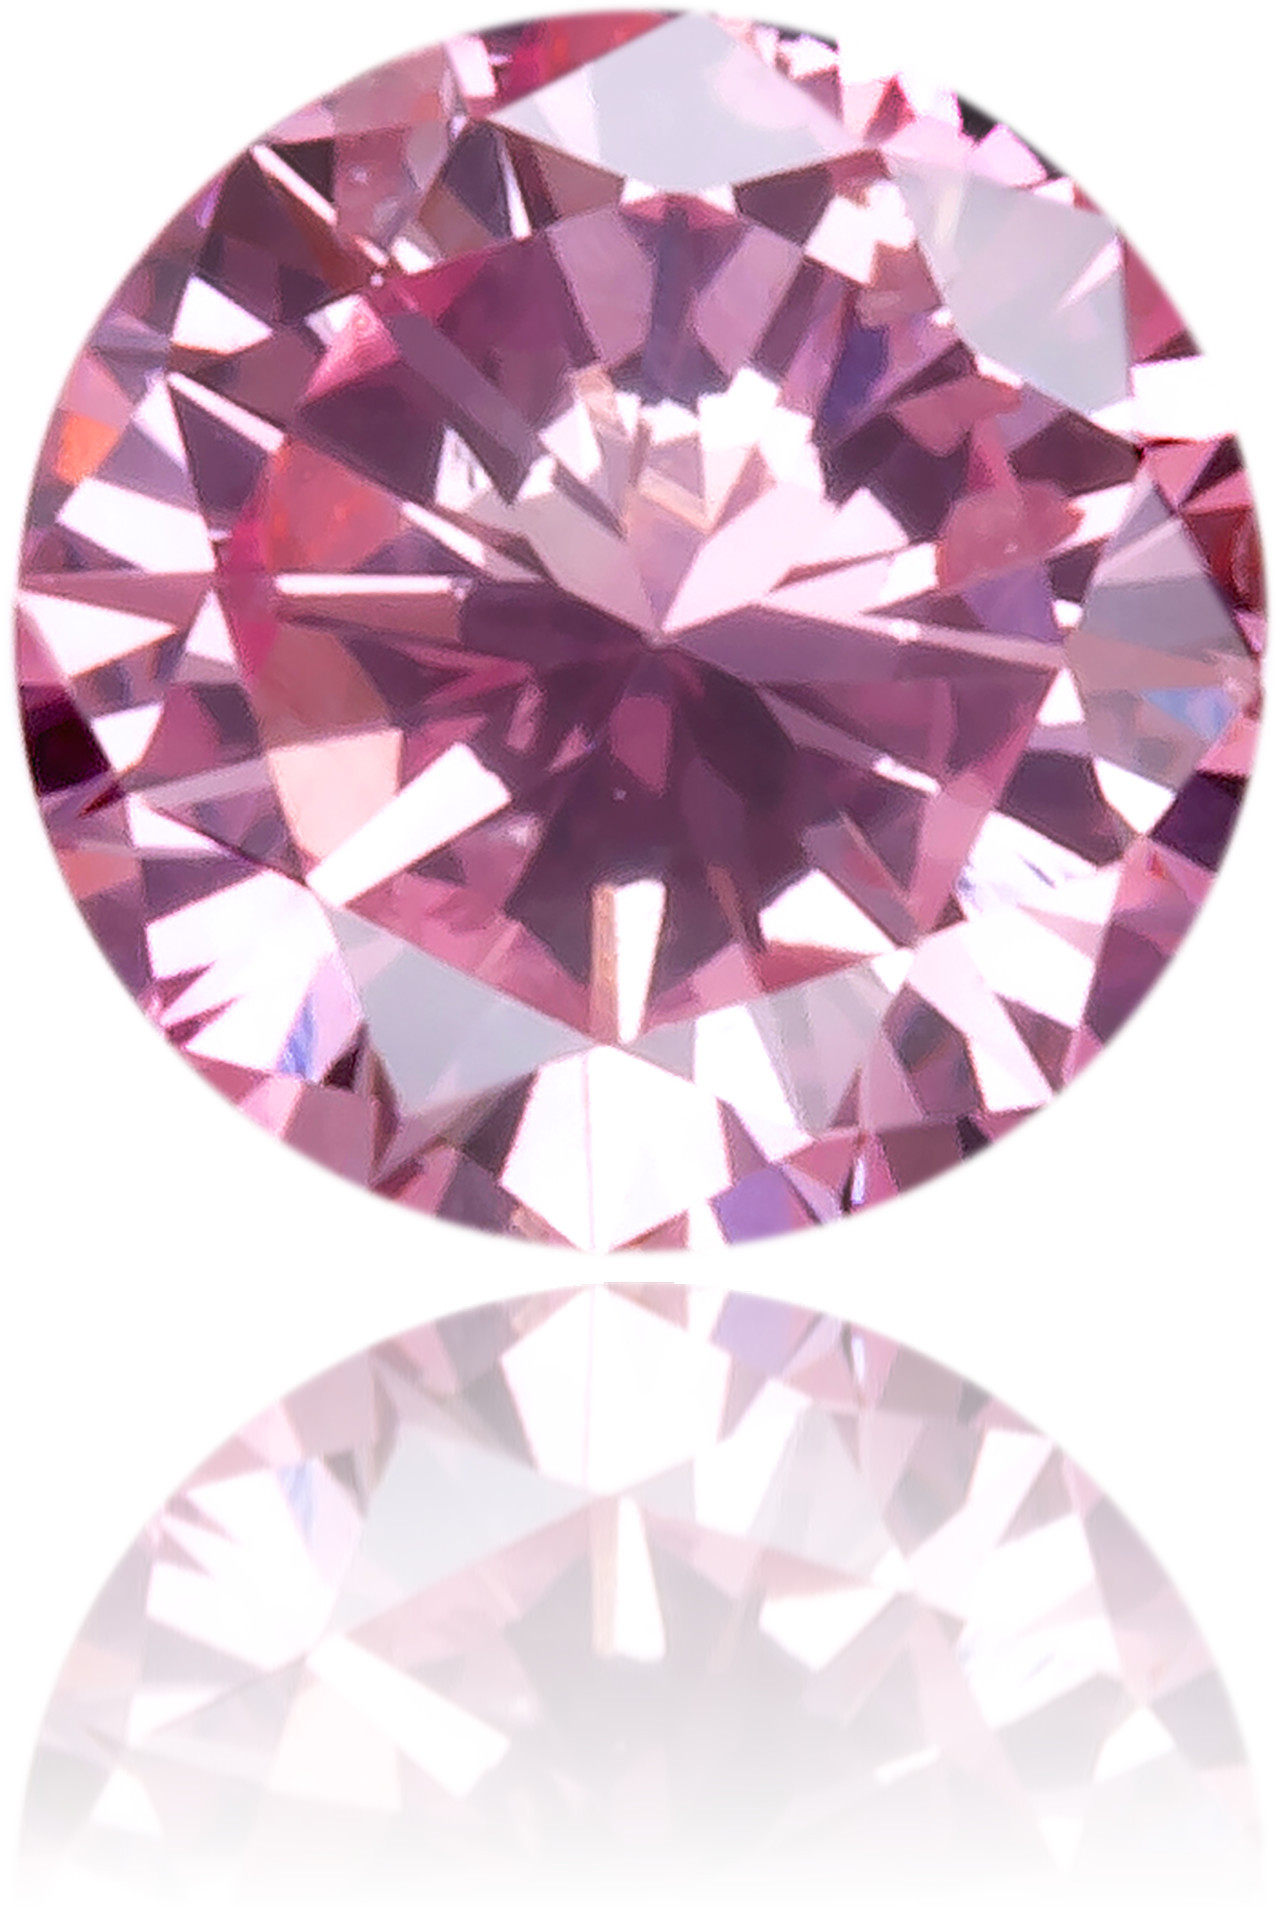 unveiled large the australian violet carat polished has a oval rio argyle from tinto biggest ever shaped west its mine diamond